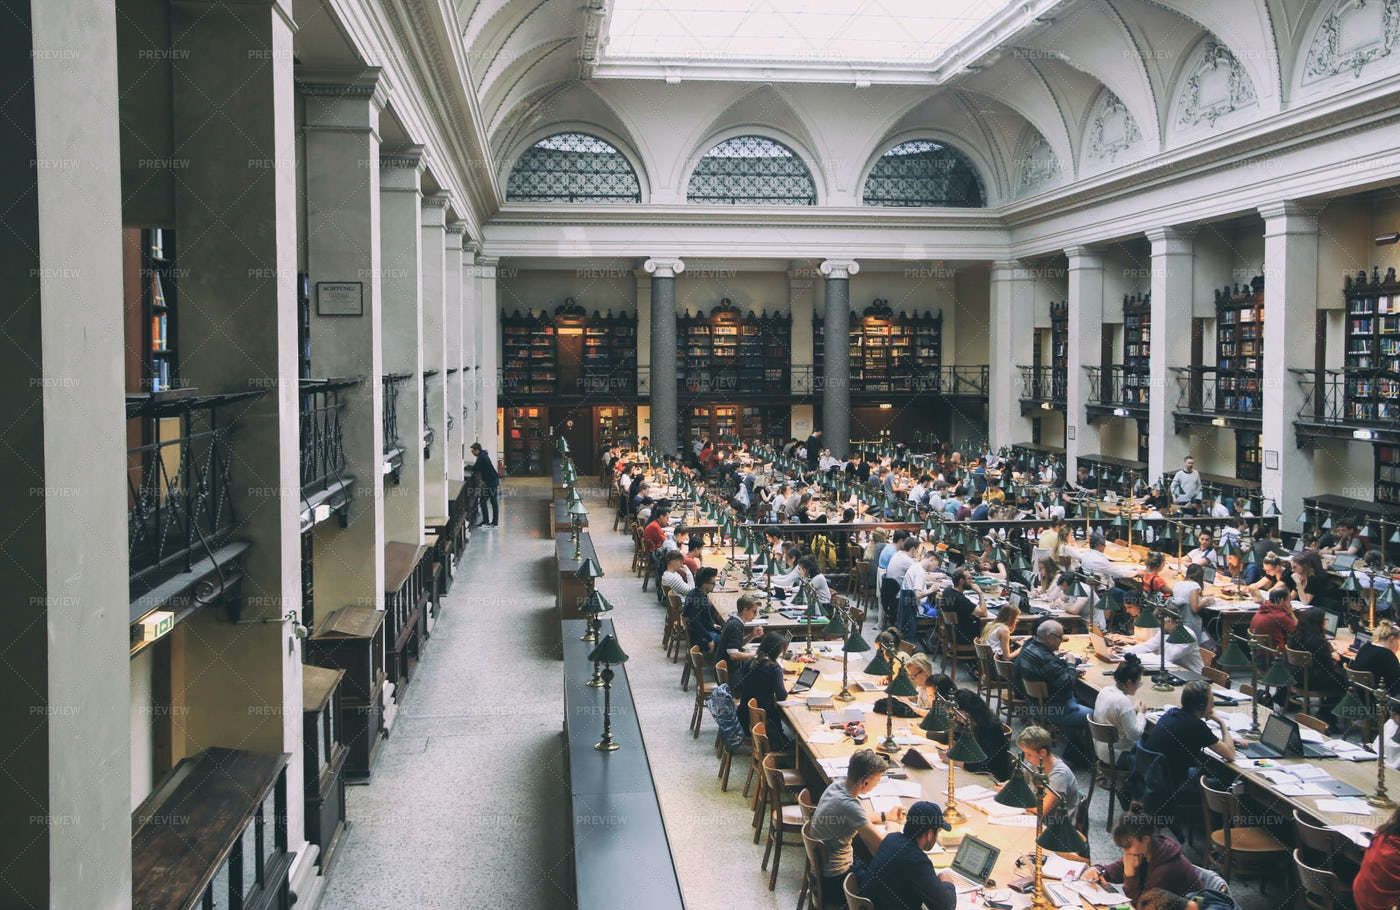 People In A Library: Stock Photos